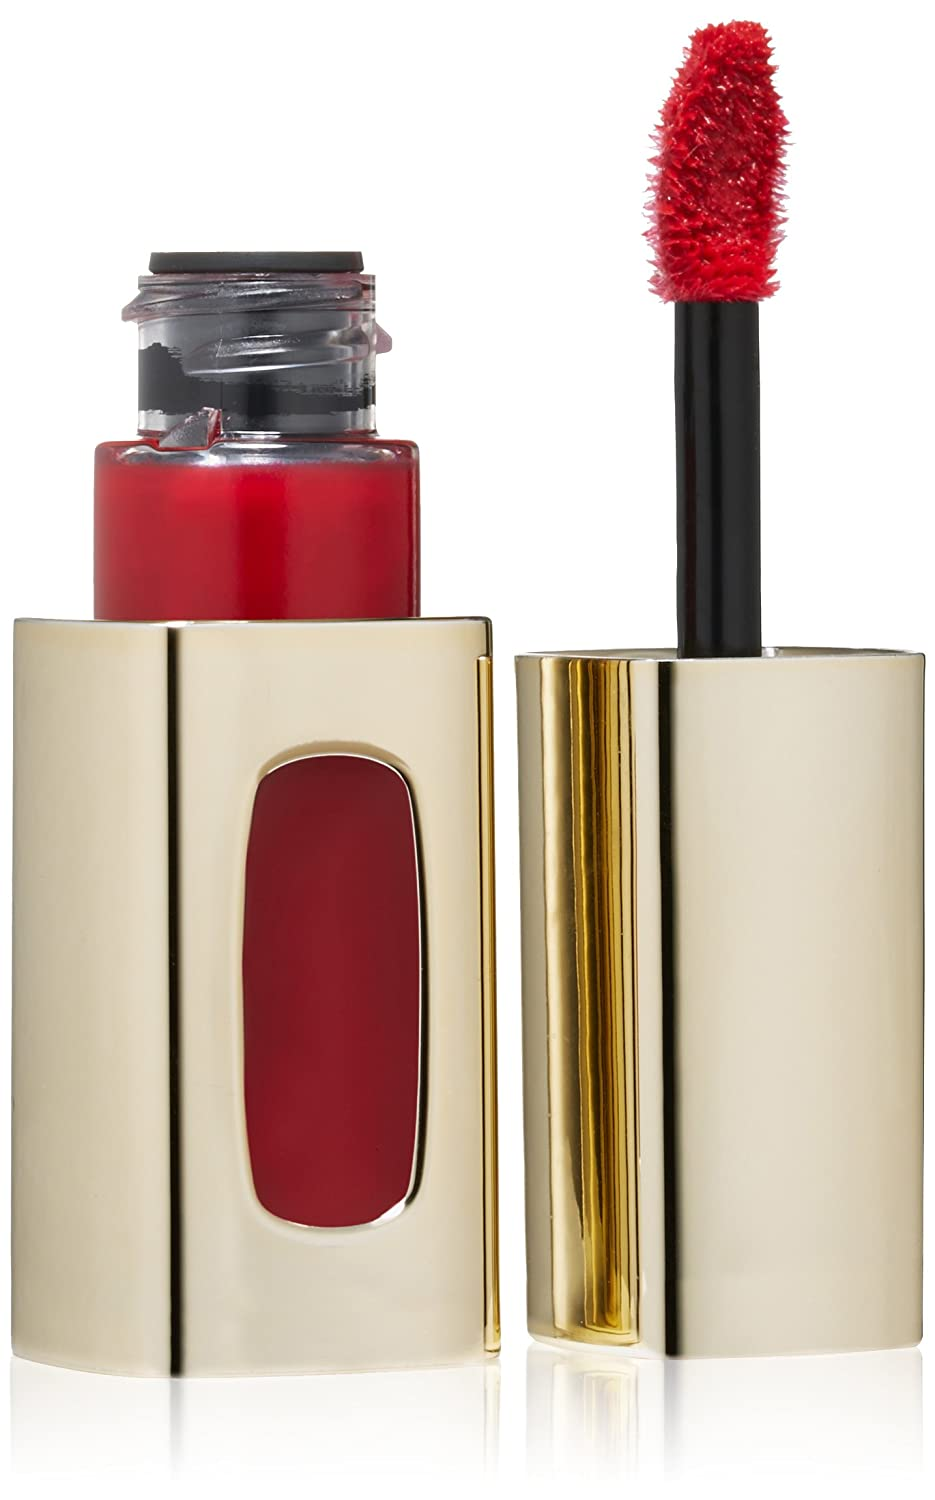 L'Oreal Paris Colour Riche Extraordinaire Lip Color, 304 Ruby Opera, 0.18 Fluid Ounce